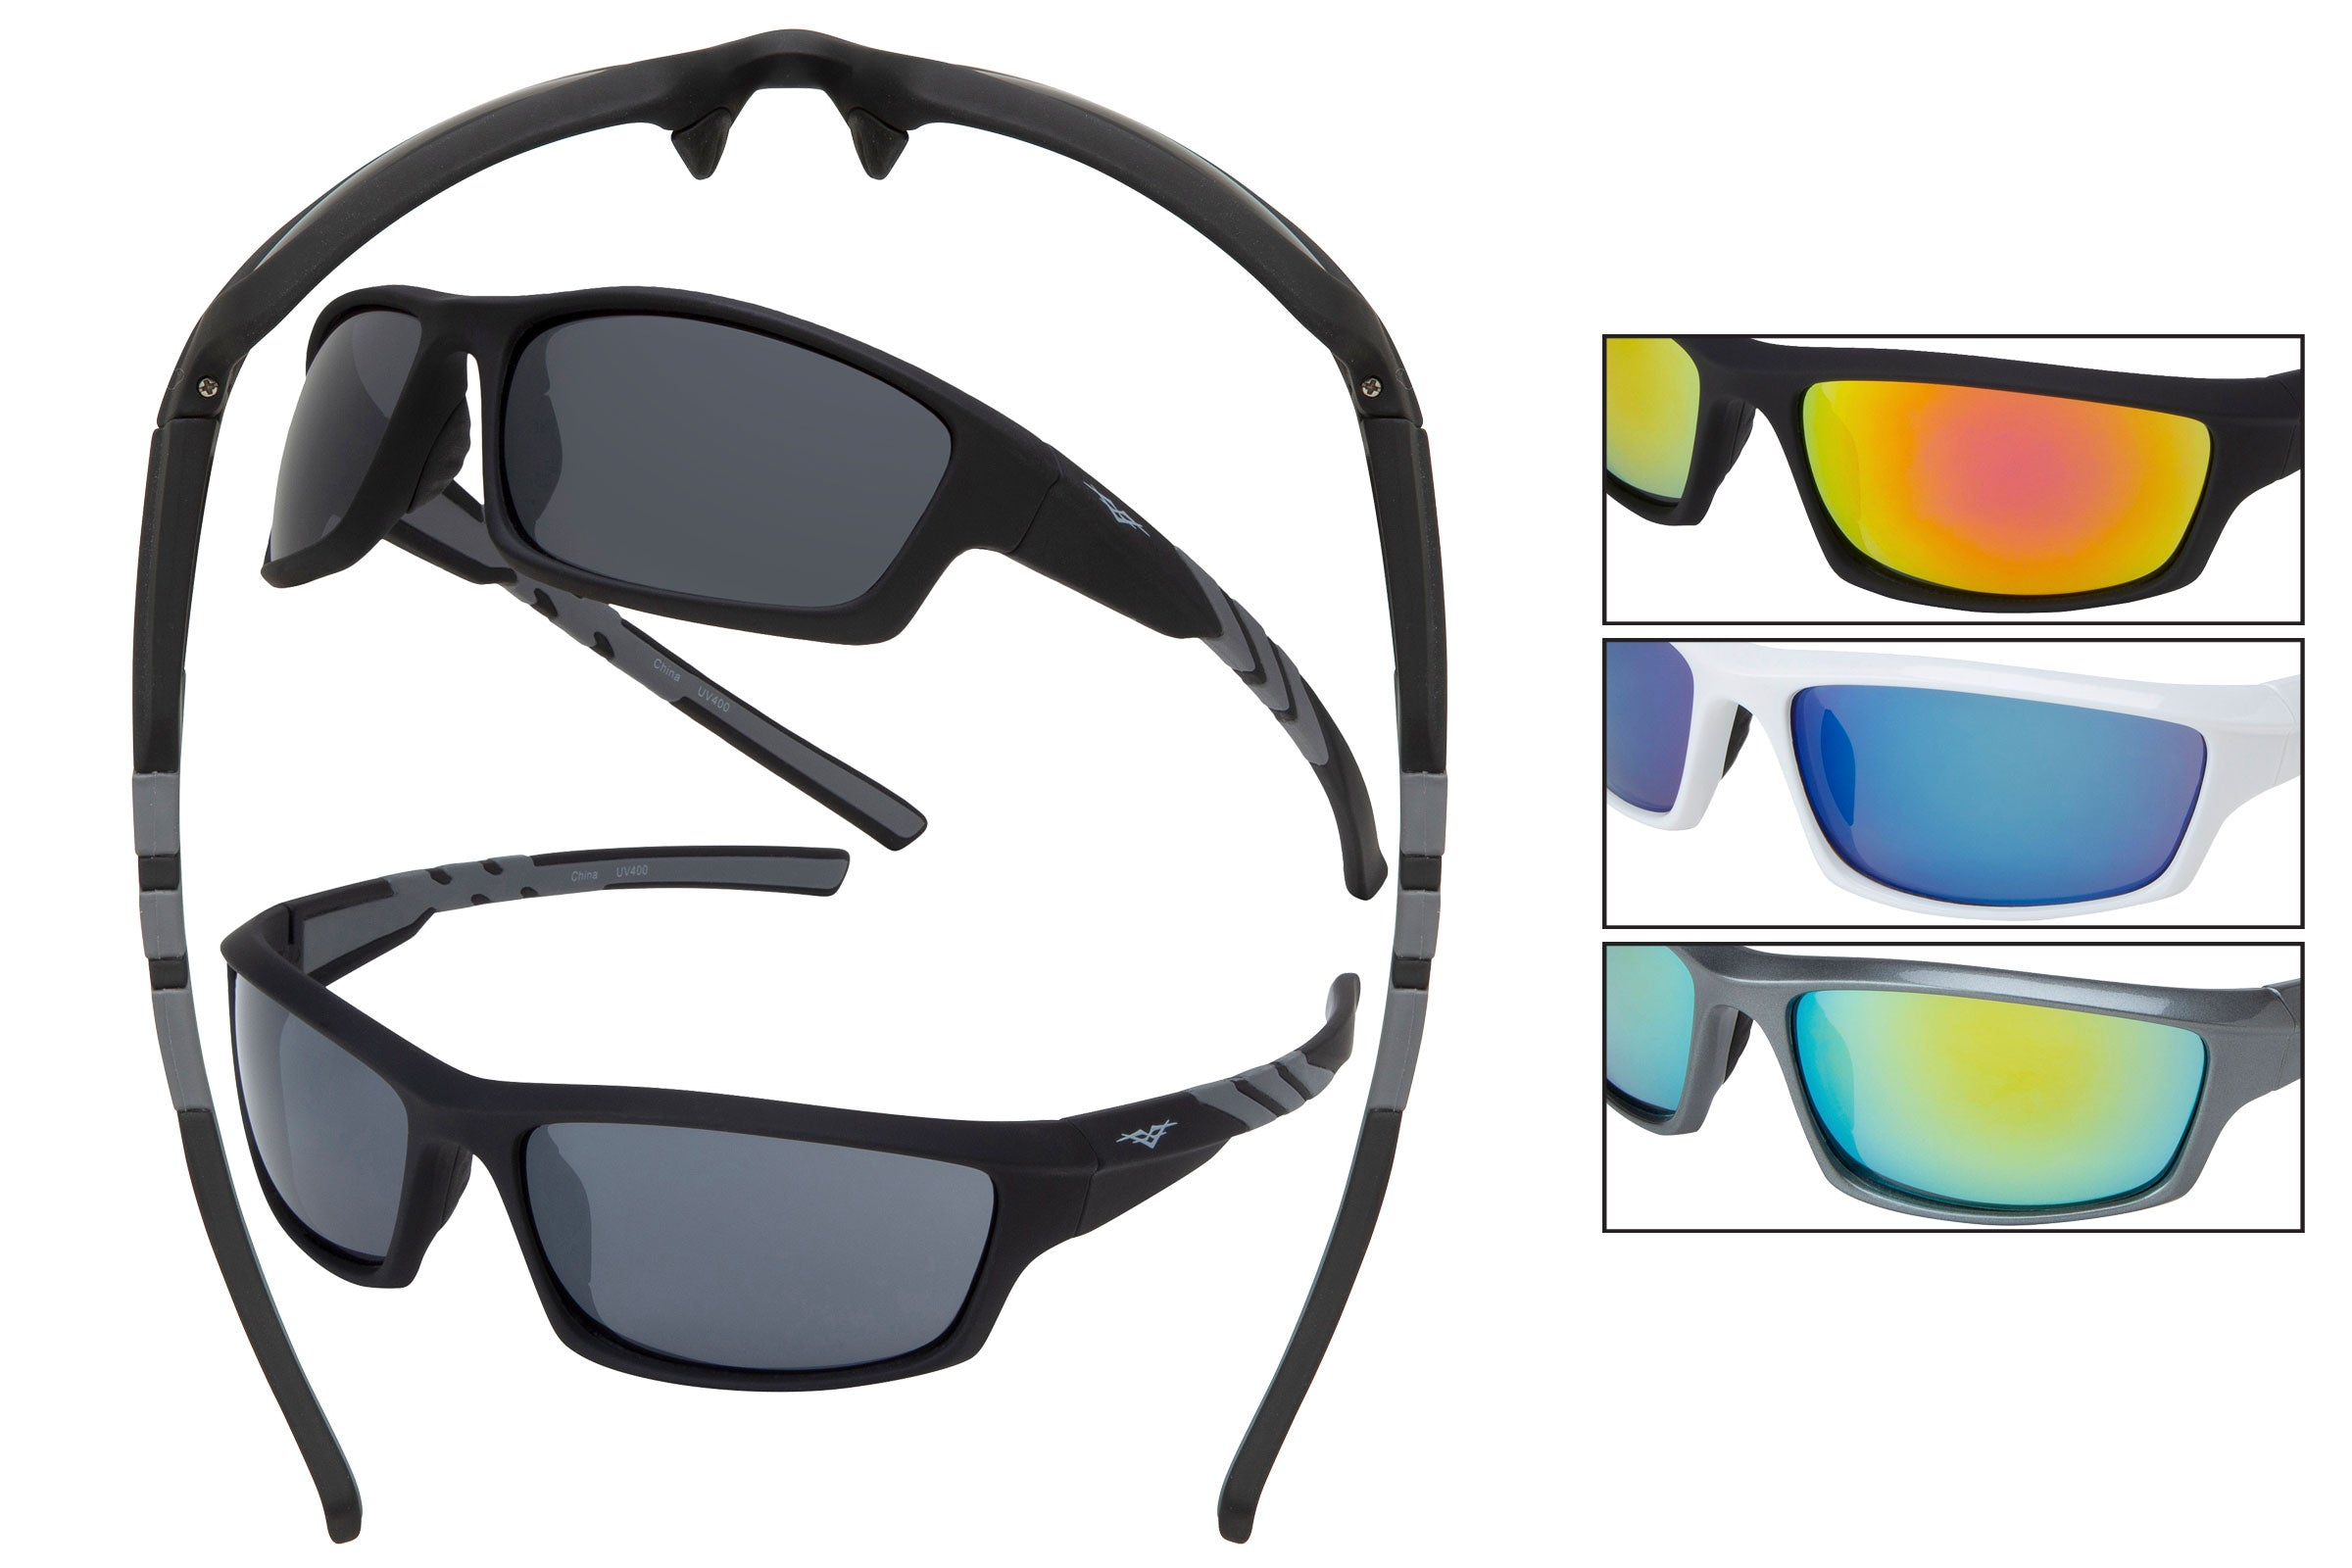 59118 - Men's PC Sports Wrap Sunglasses